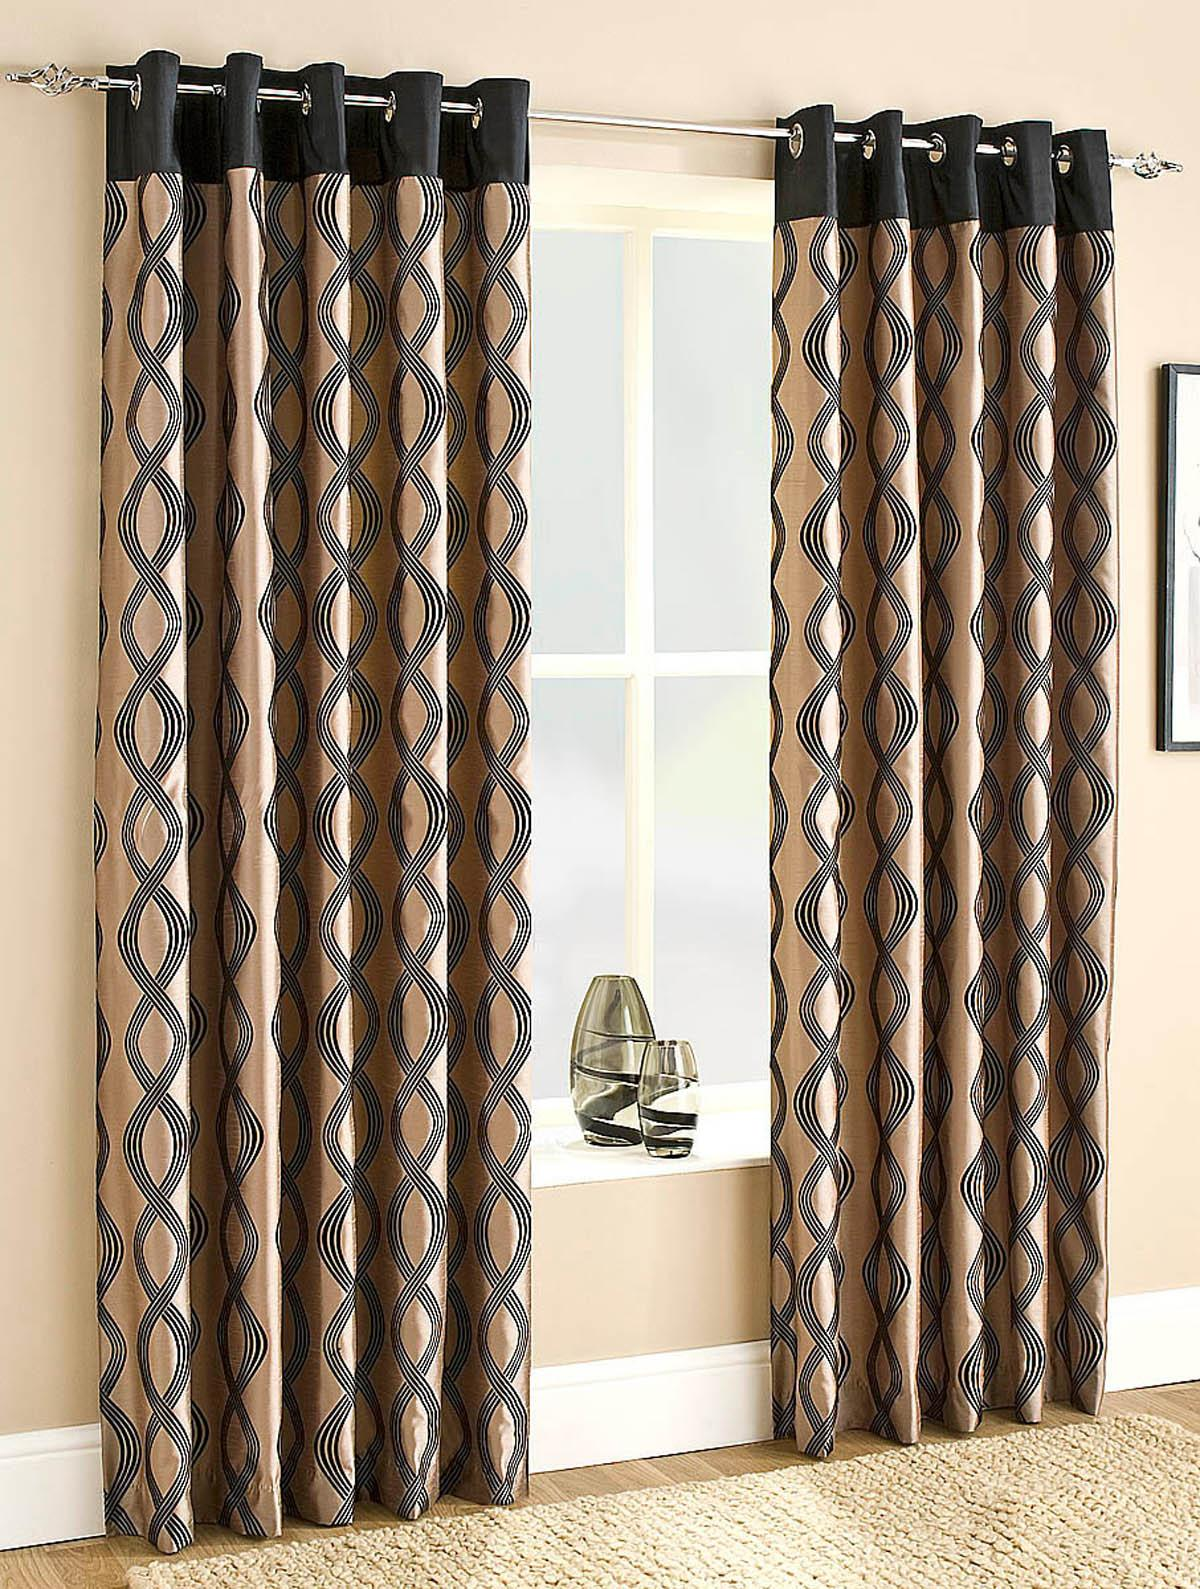 Campania Lined Eyelet Curtains Black